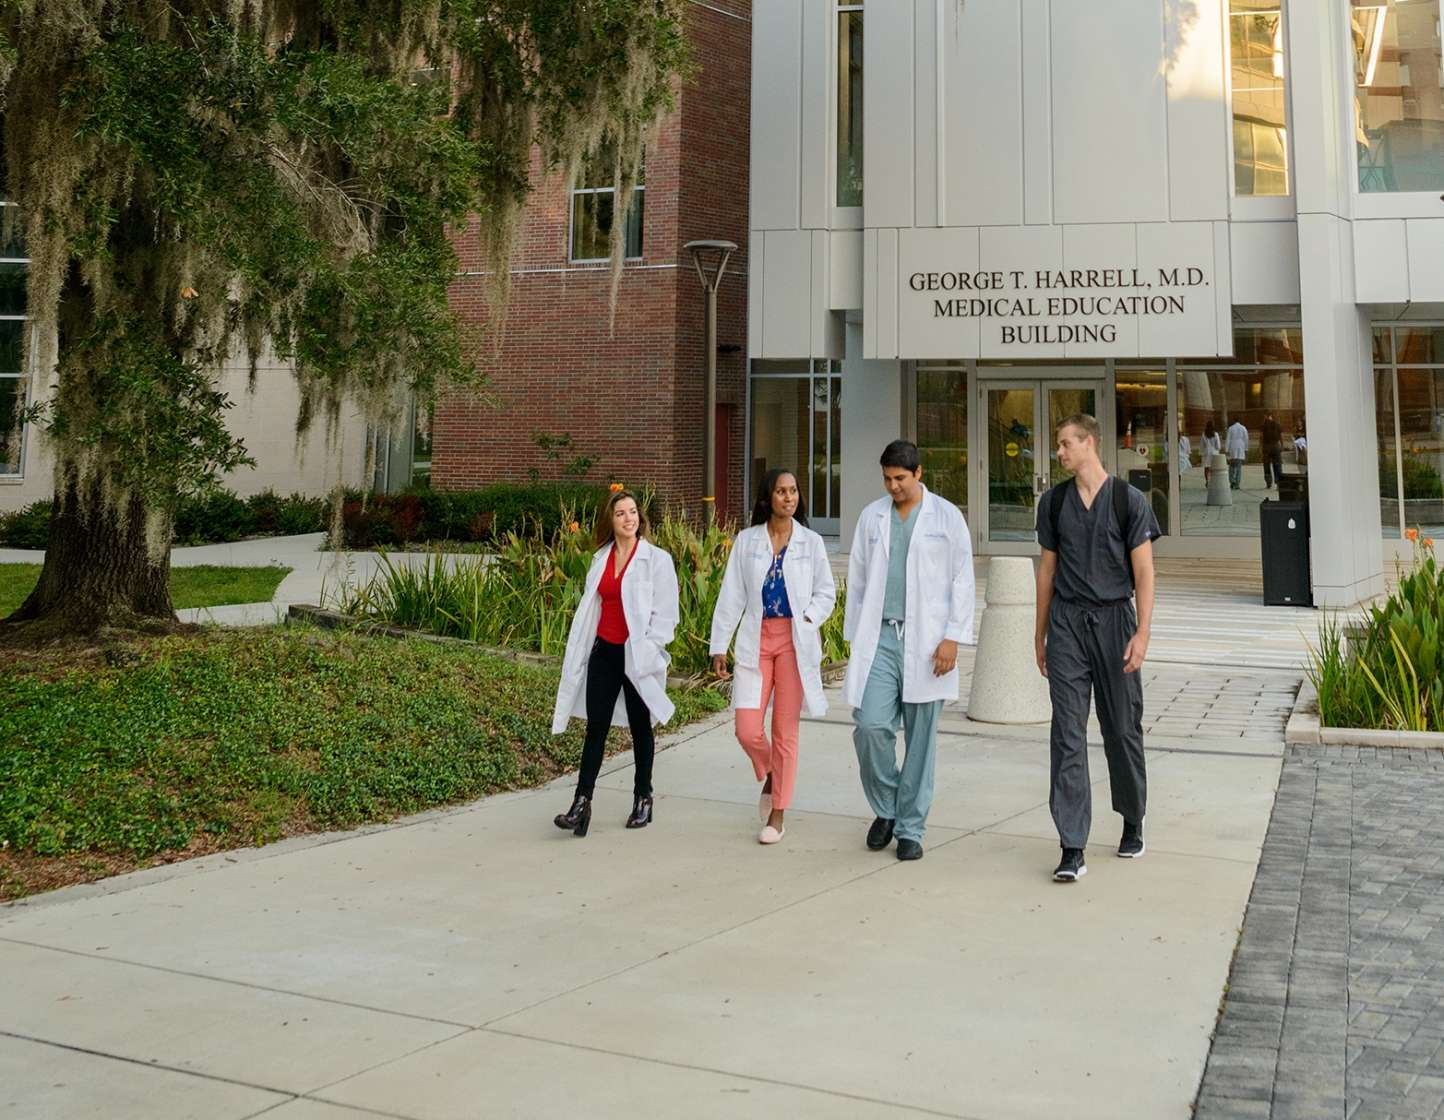 Four Medical Students walking in front of The Harrell Medical Education building